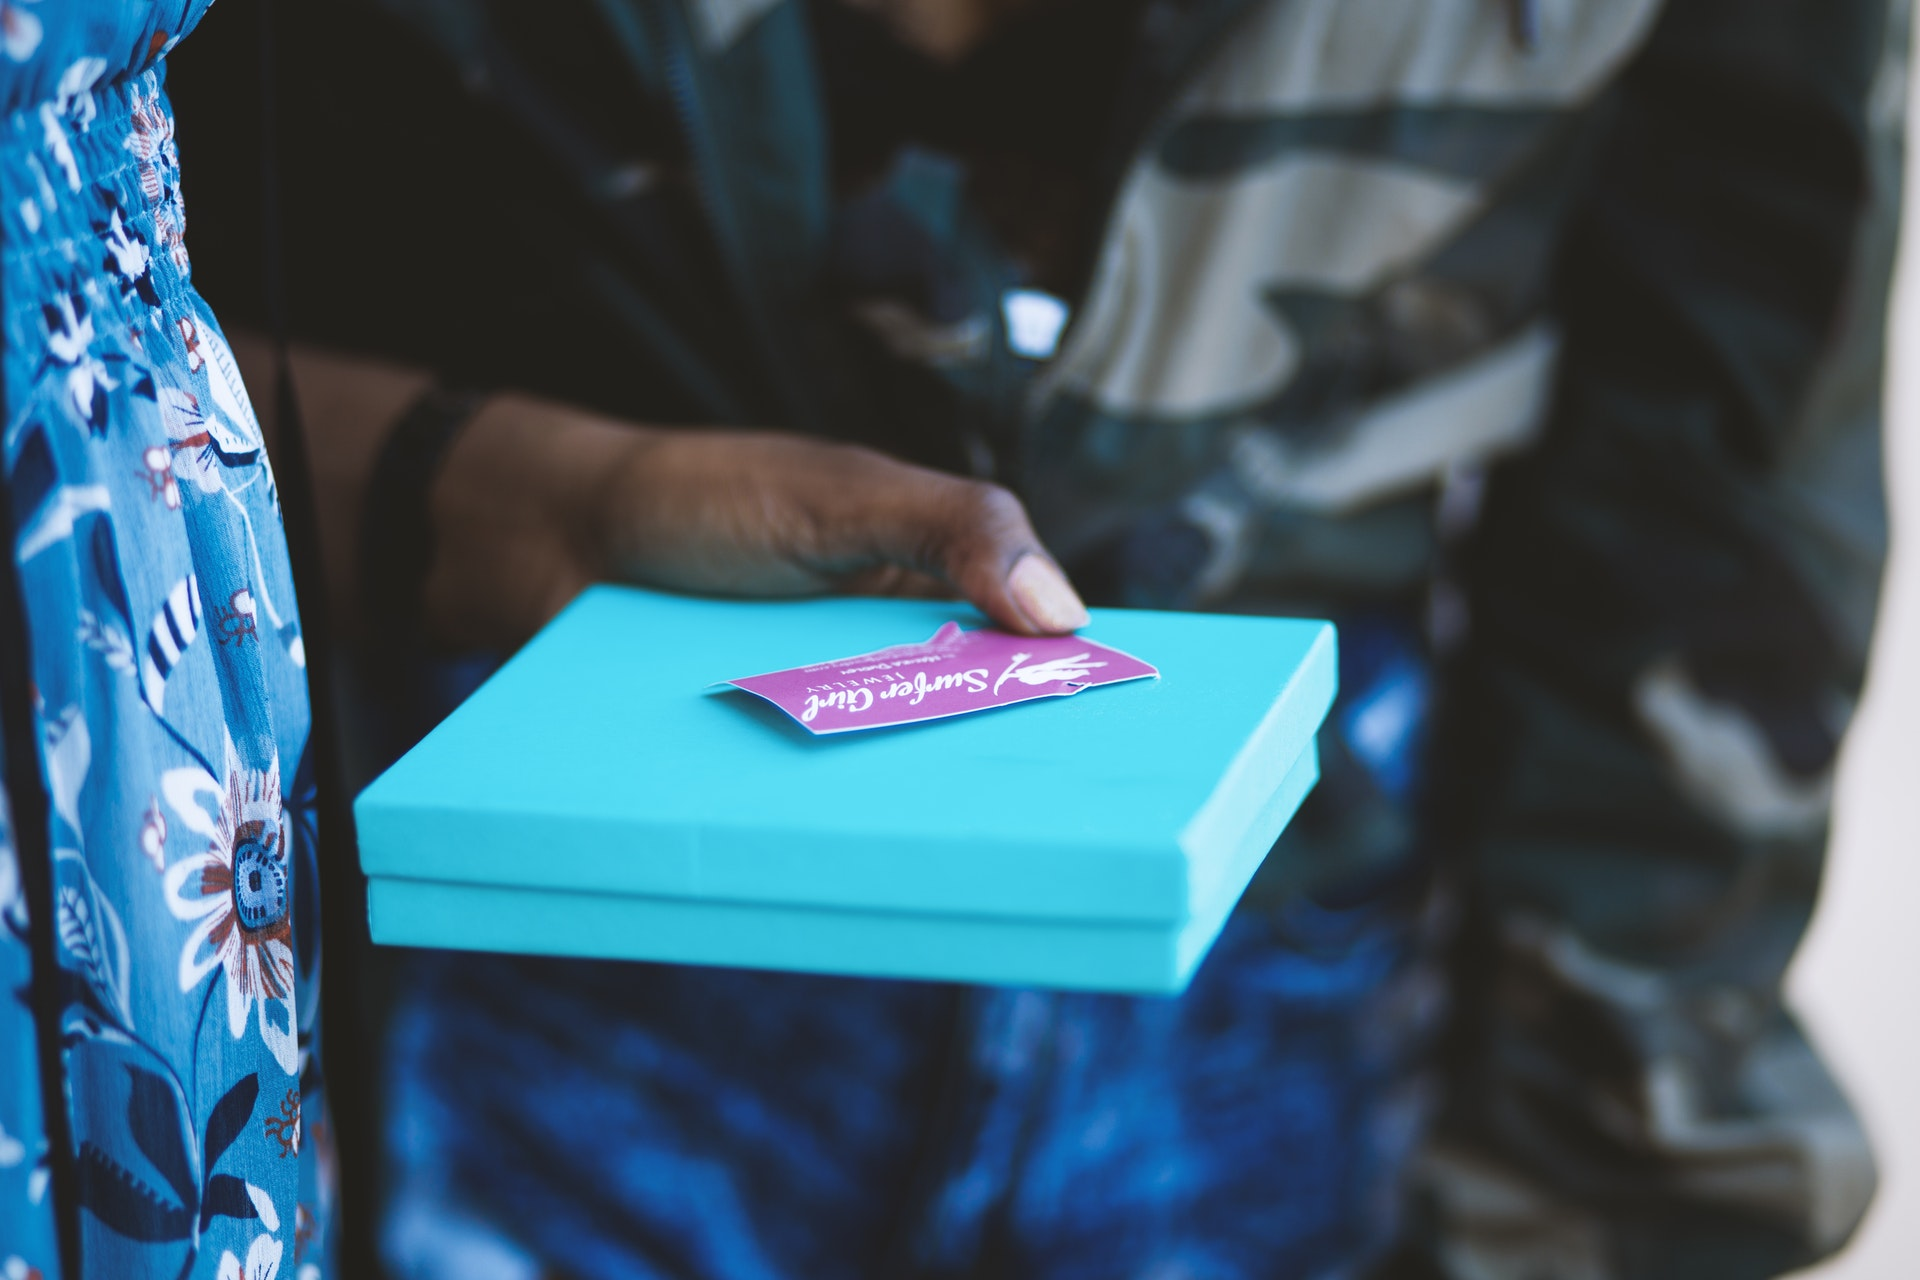 Woman-Holding-Gift-Card-Received-As-A-Present